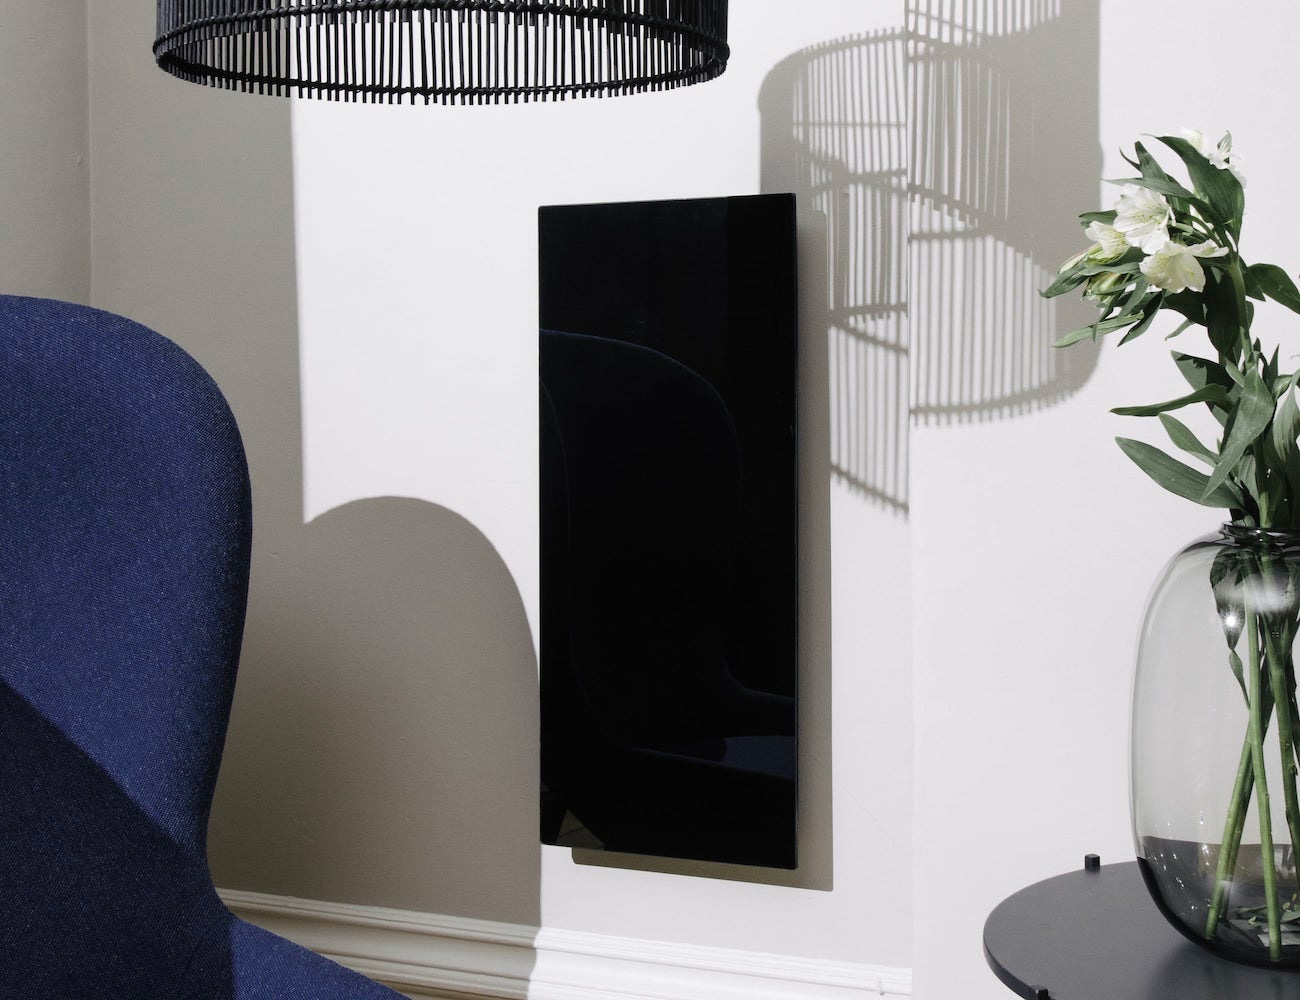 Heat Your Home with the World's Most Efficient (and best looking) Radiator at werd.com